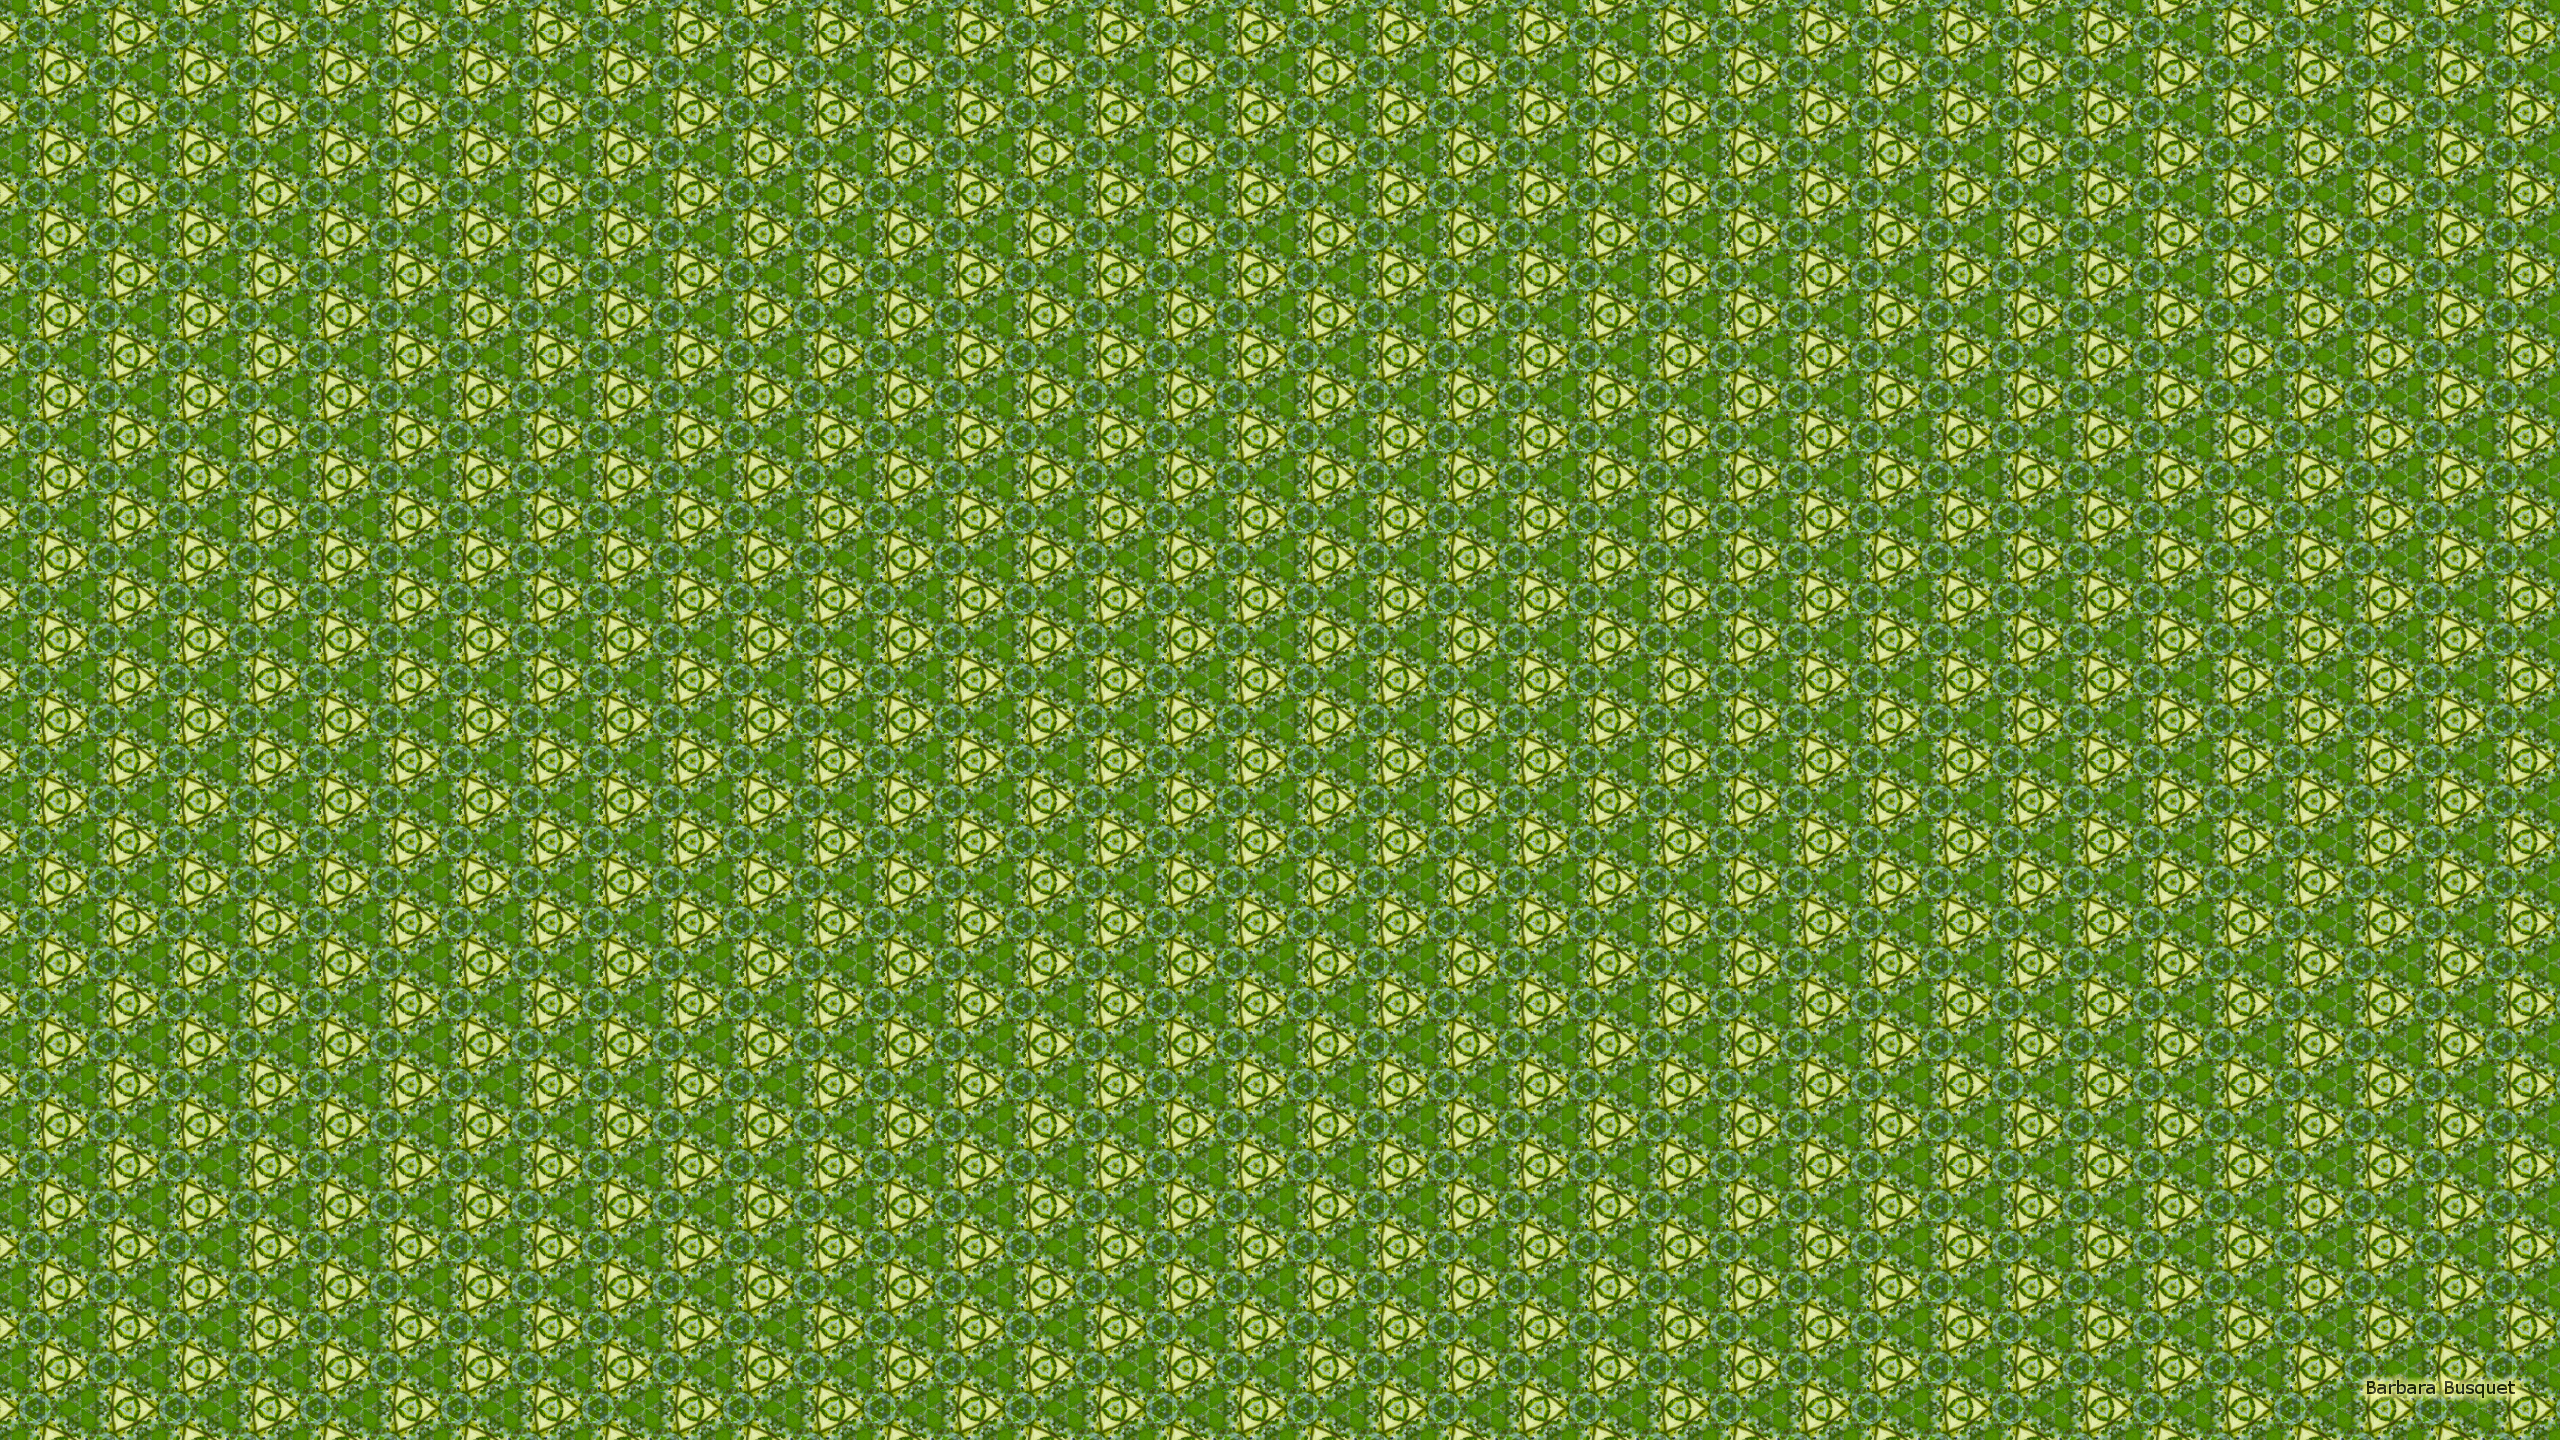 green pattern backgrounds - photo #36